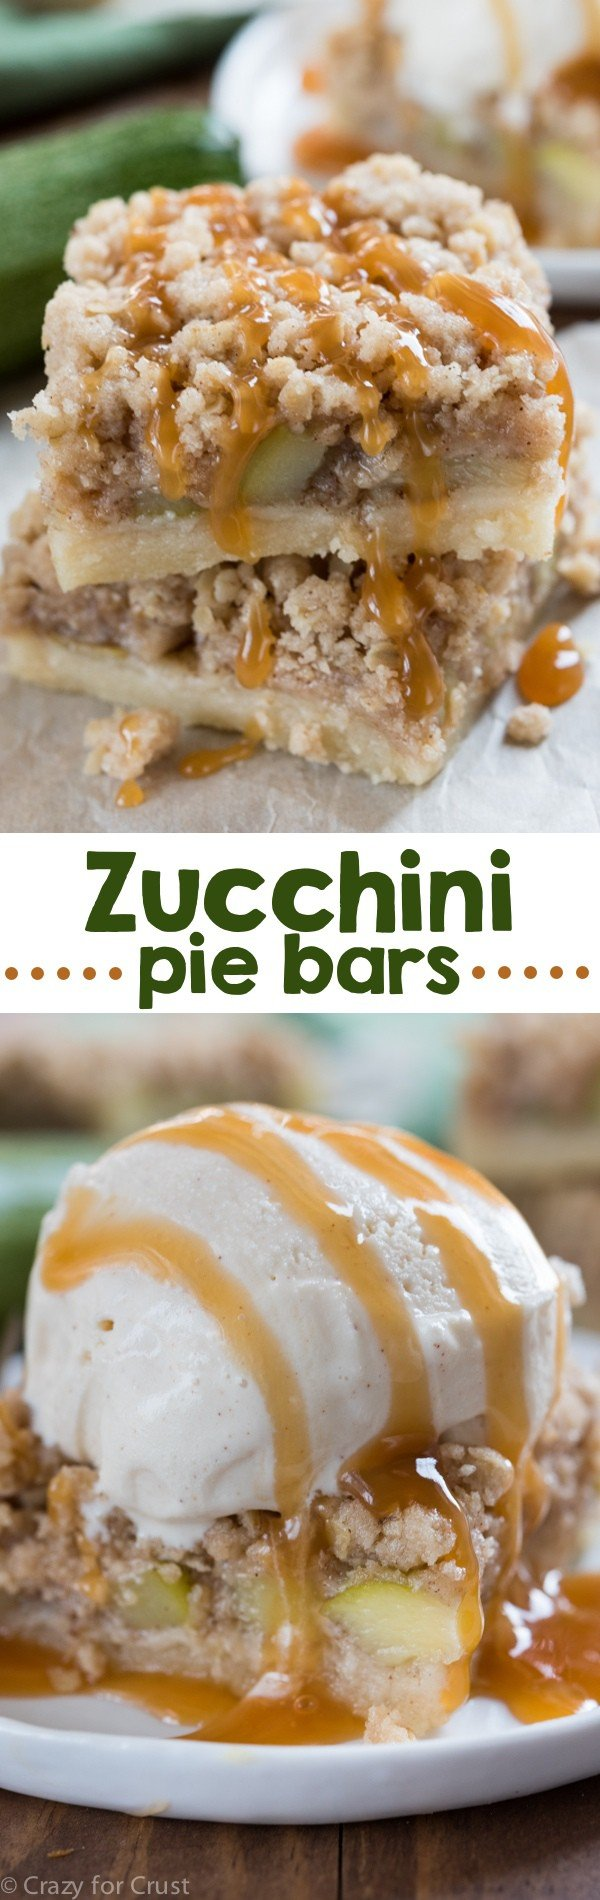 Zucchini Pie Bars! Cooking zucchini like this makes it taste like apple pie!